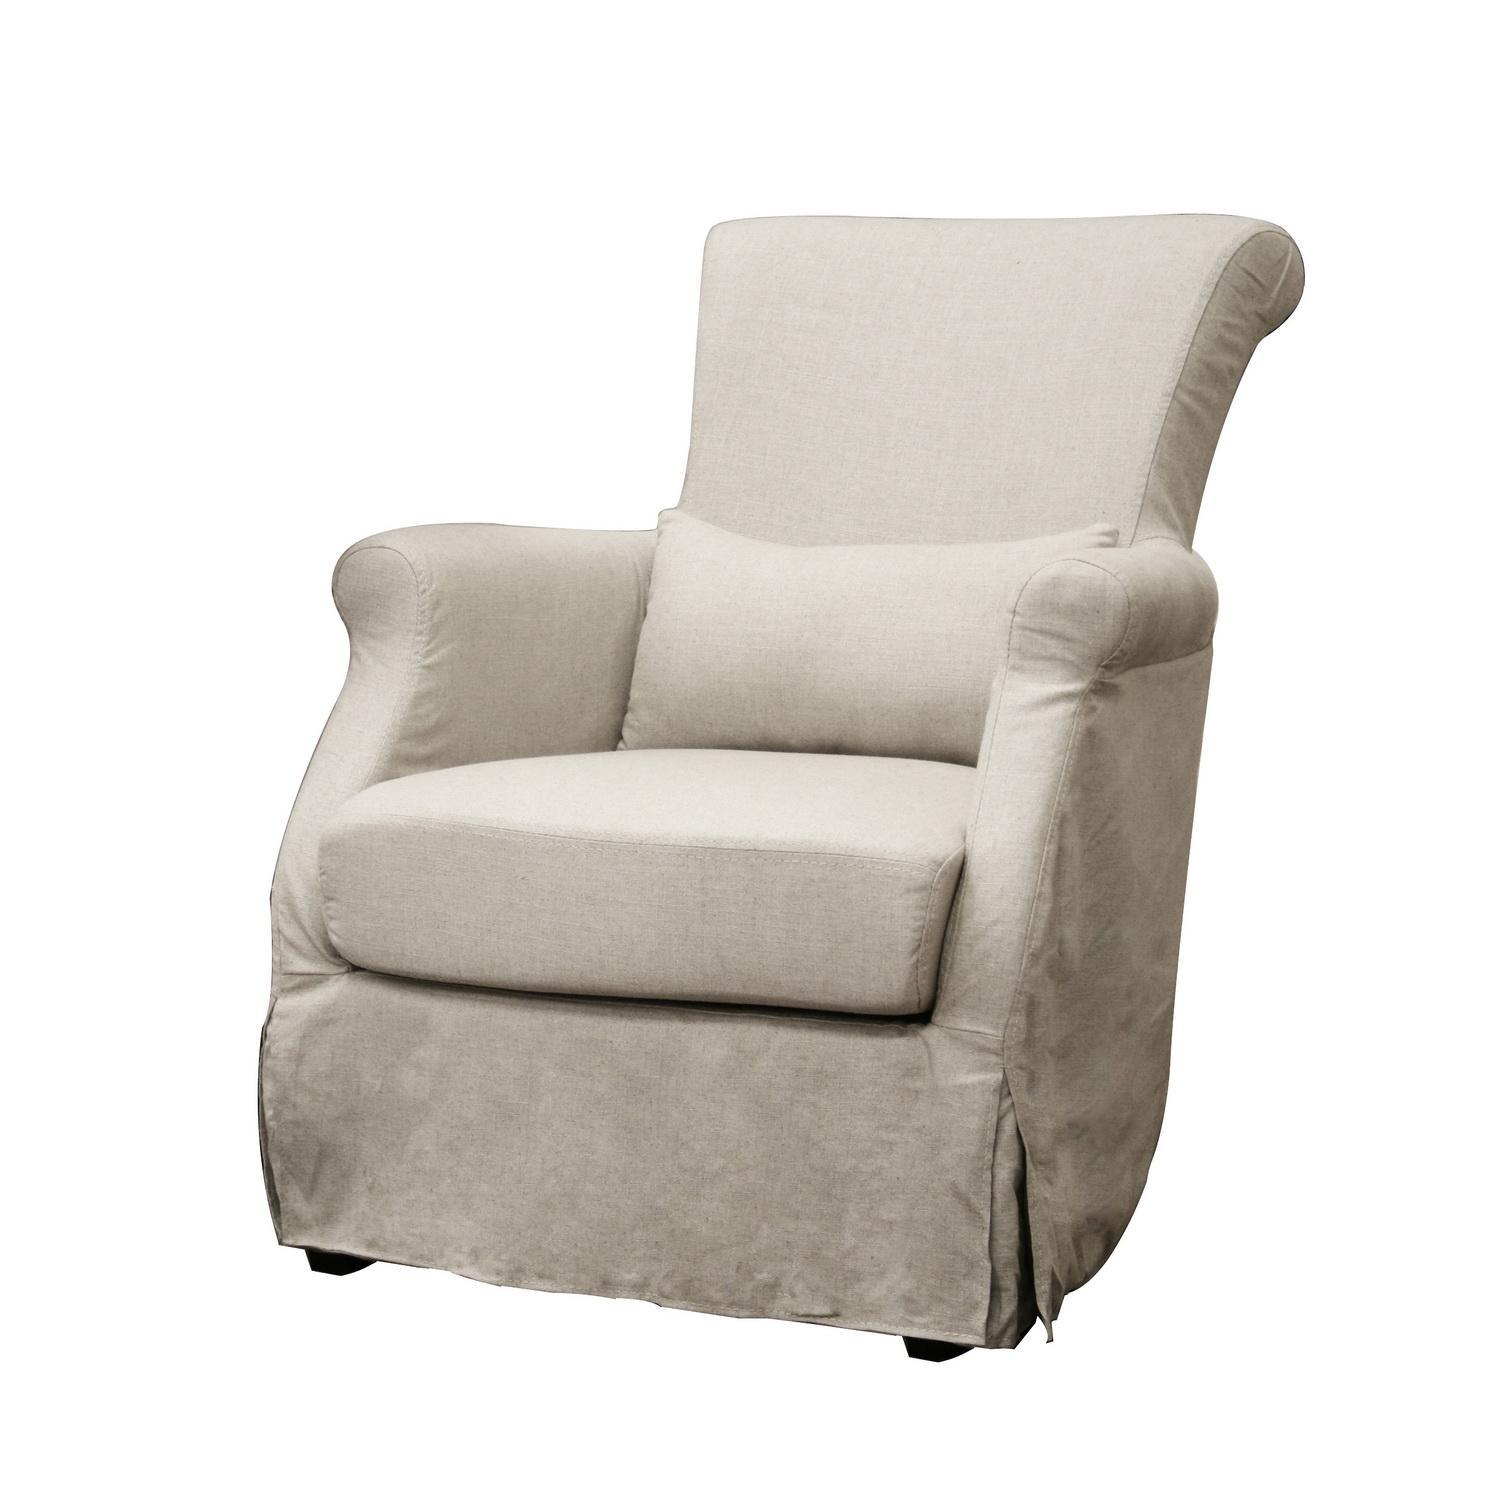 Carradine Beige Linen Slipcover Modern Club Chair - Free Shipping ...